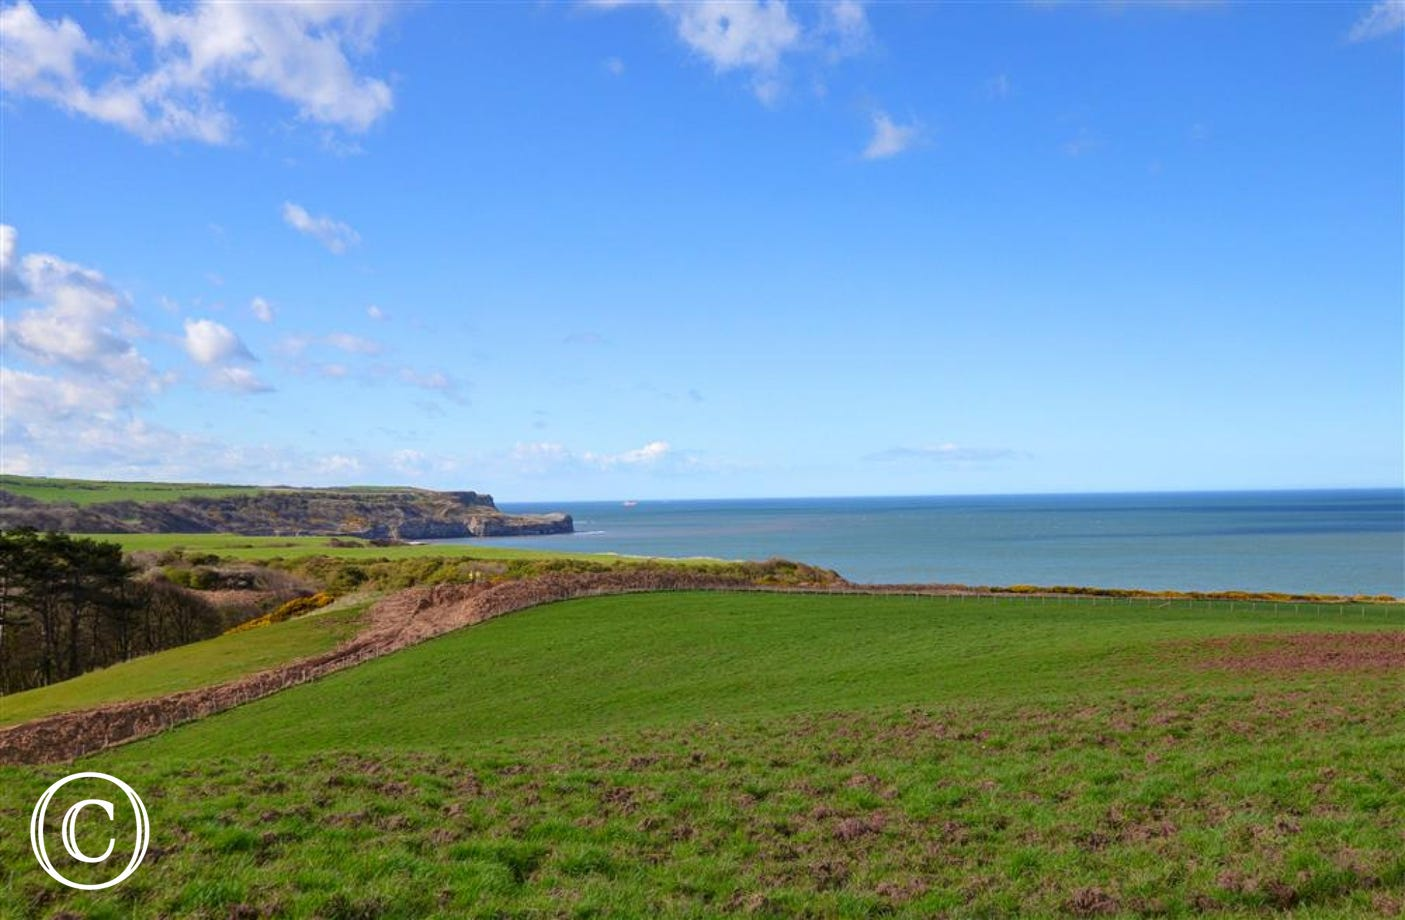 Views of the Sandsend Coast from the drive way to Moss Brow where The Mistal is located.